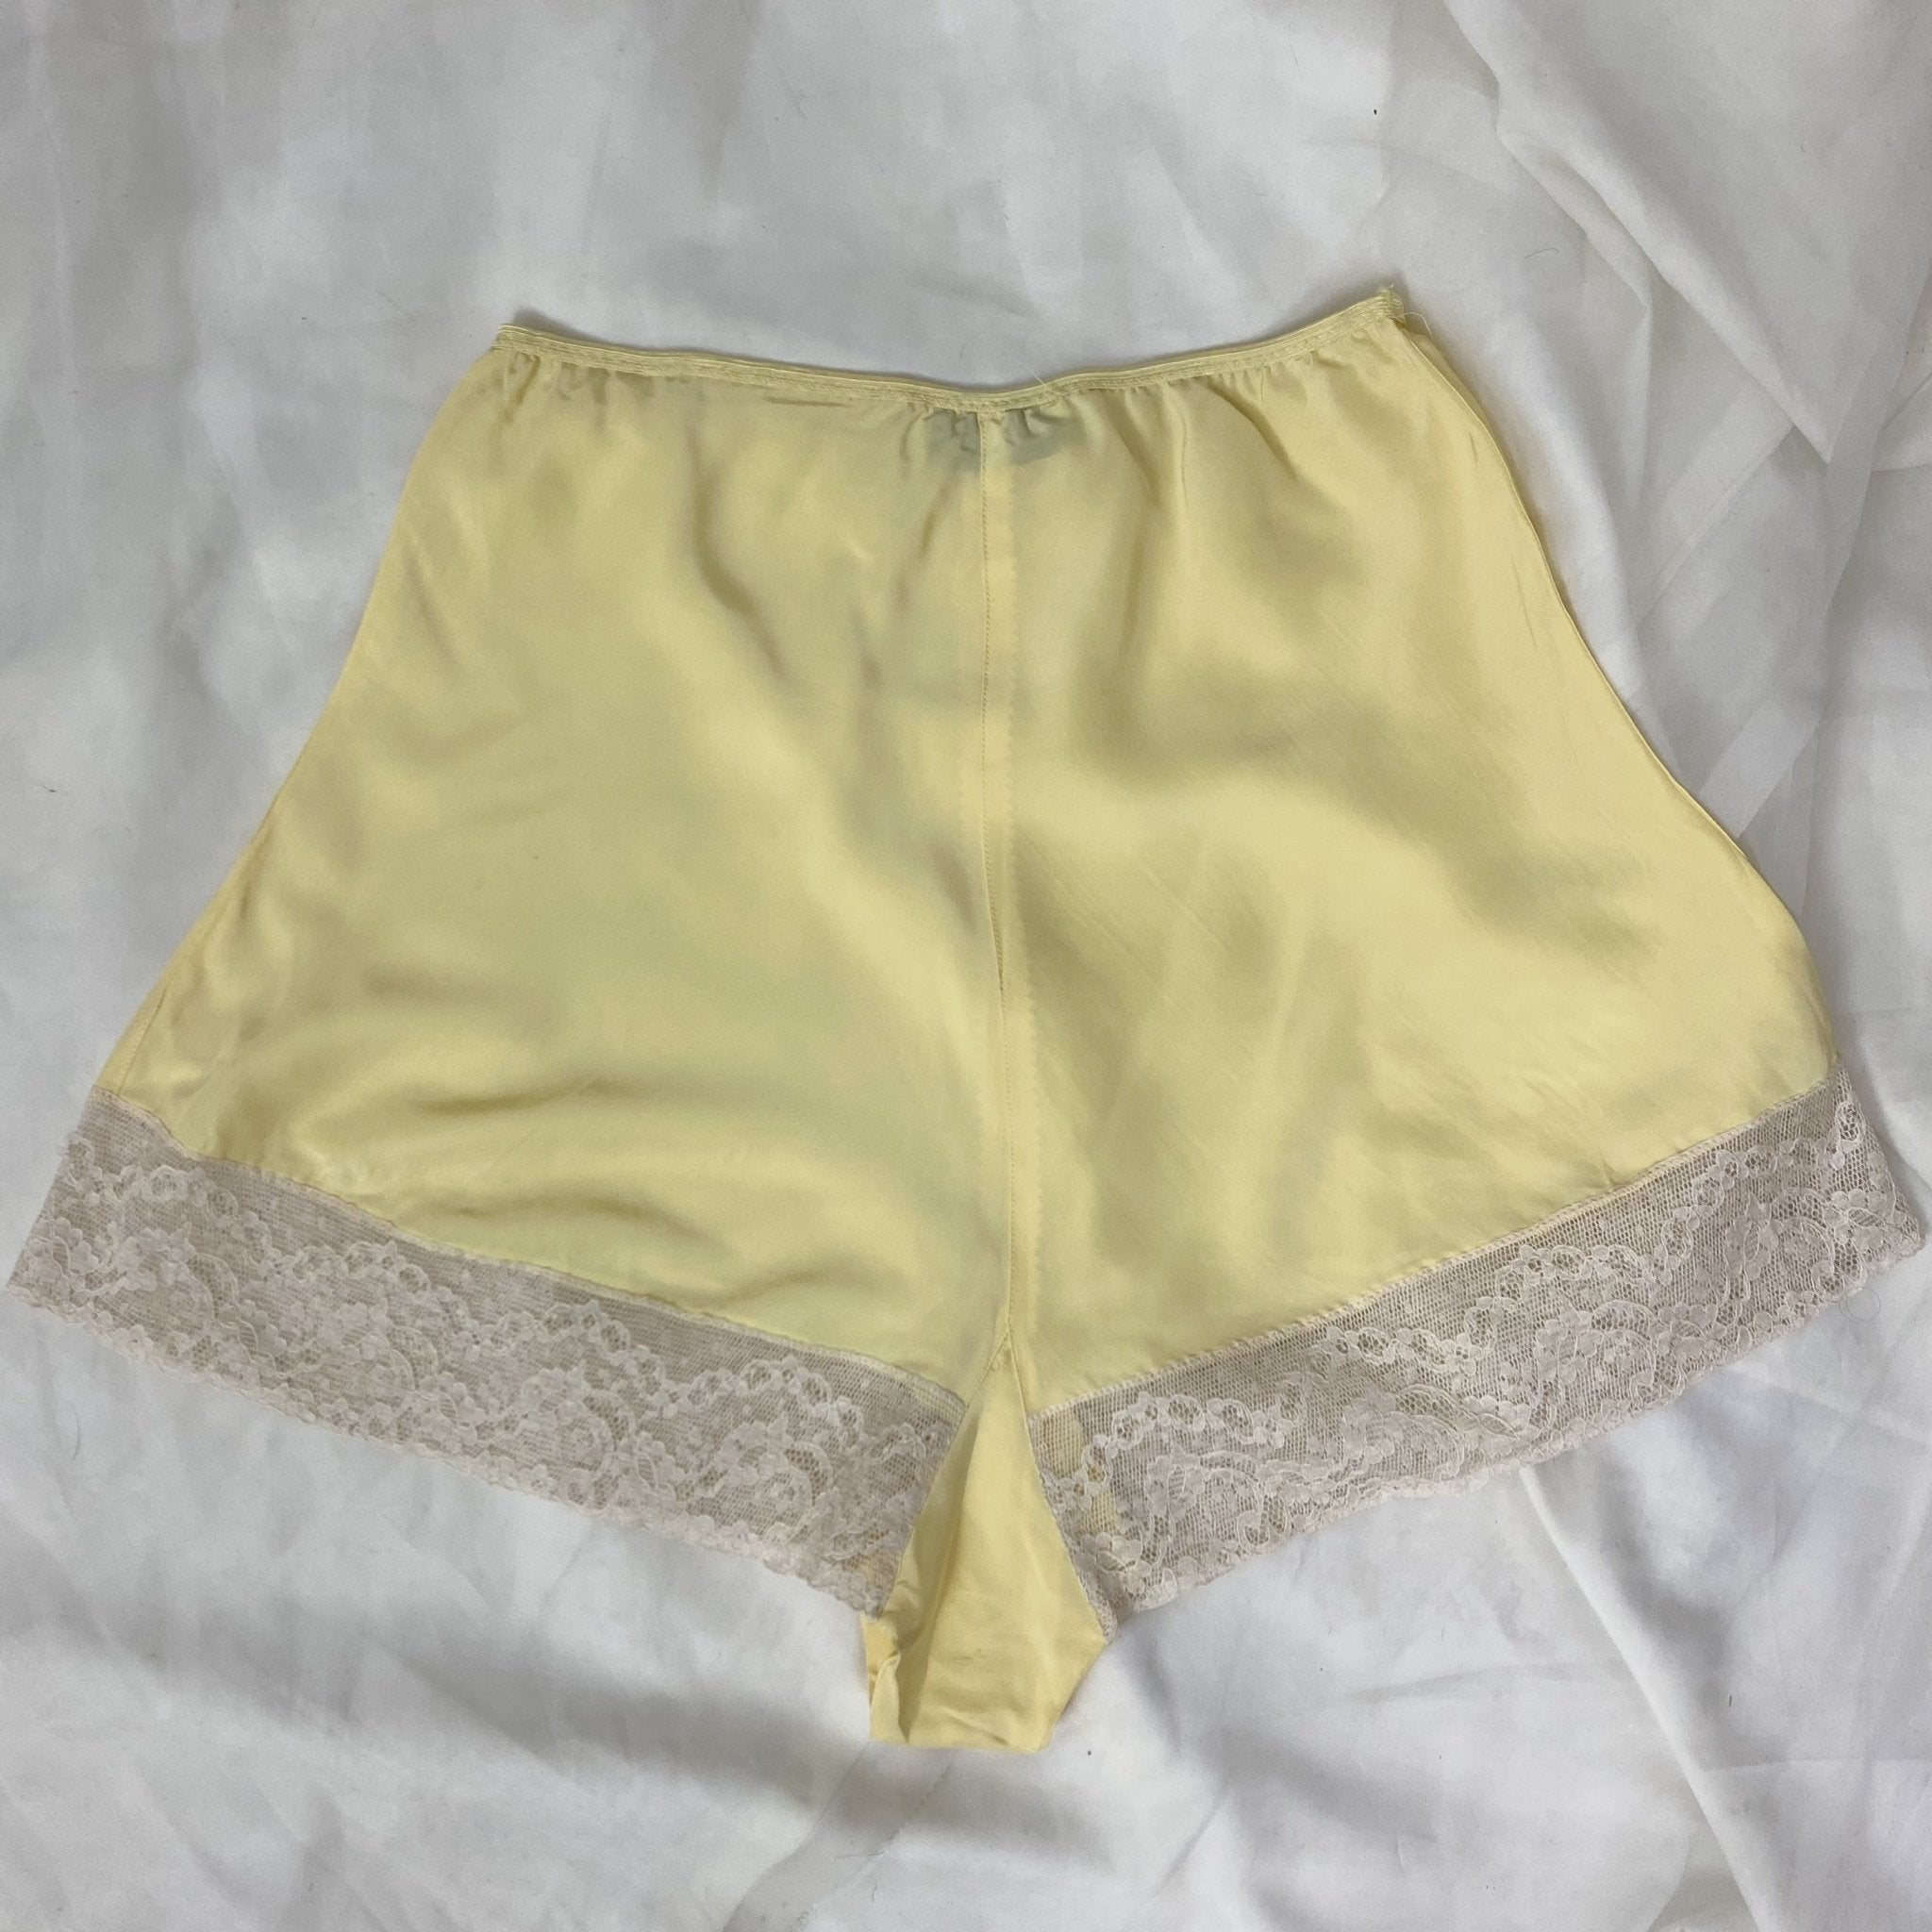 Vintage 1940's Tap Pants | Rich Butter Yellow Rayon with Ivory Lace | Size S, M | Countess Lynn - Daggers & Dames